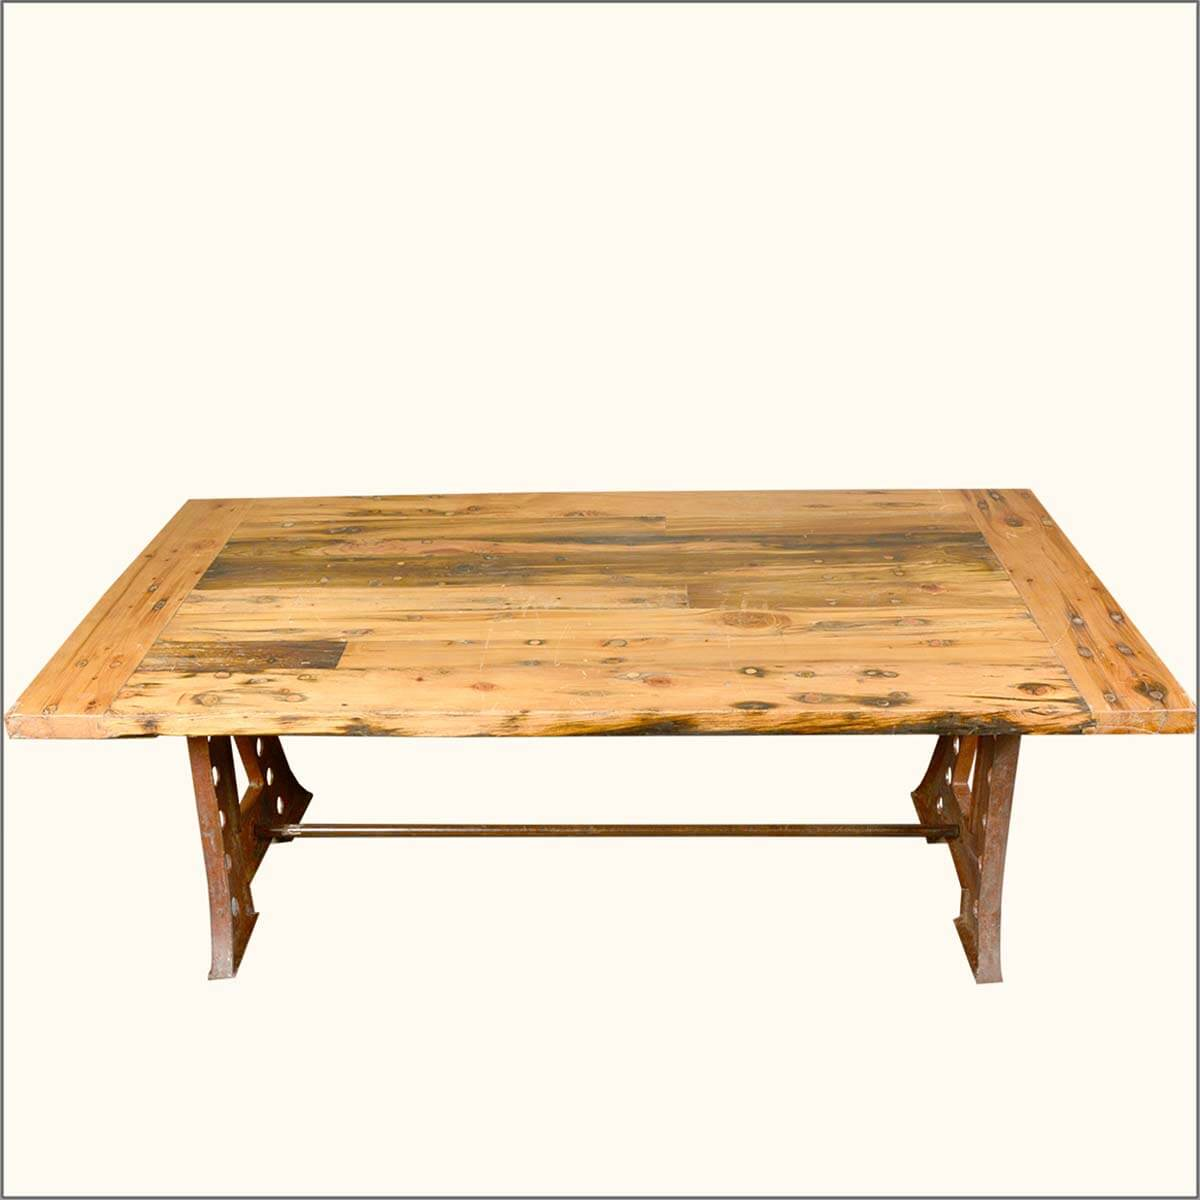 Reclaimed Wood Industrial Factory Iron Trestle Pedestal Dining Table